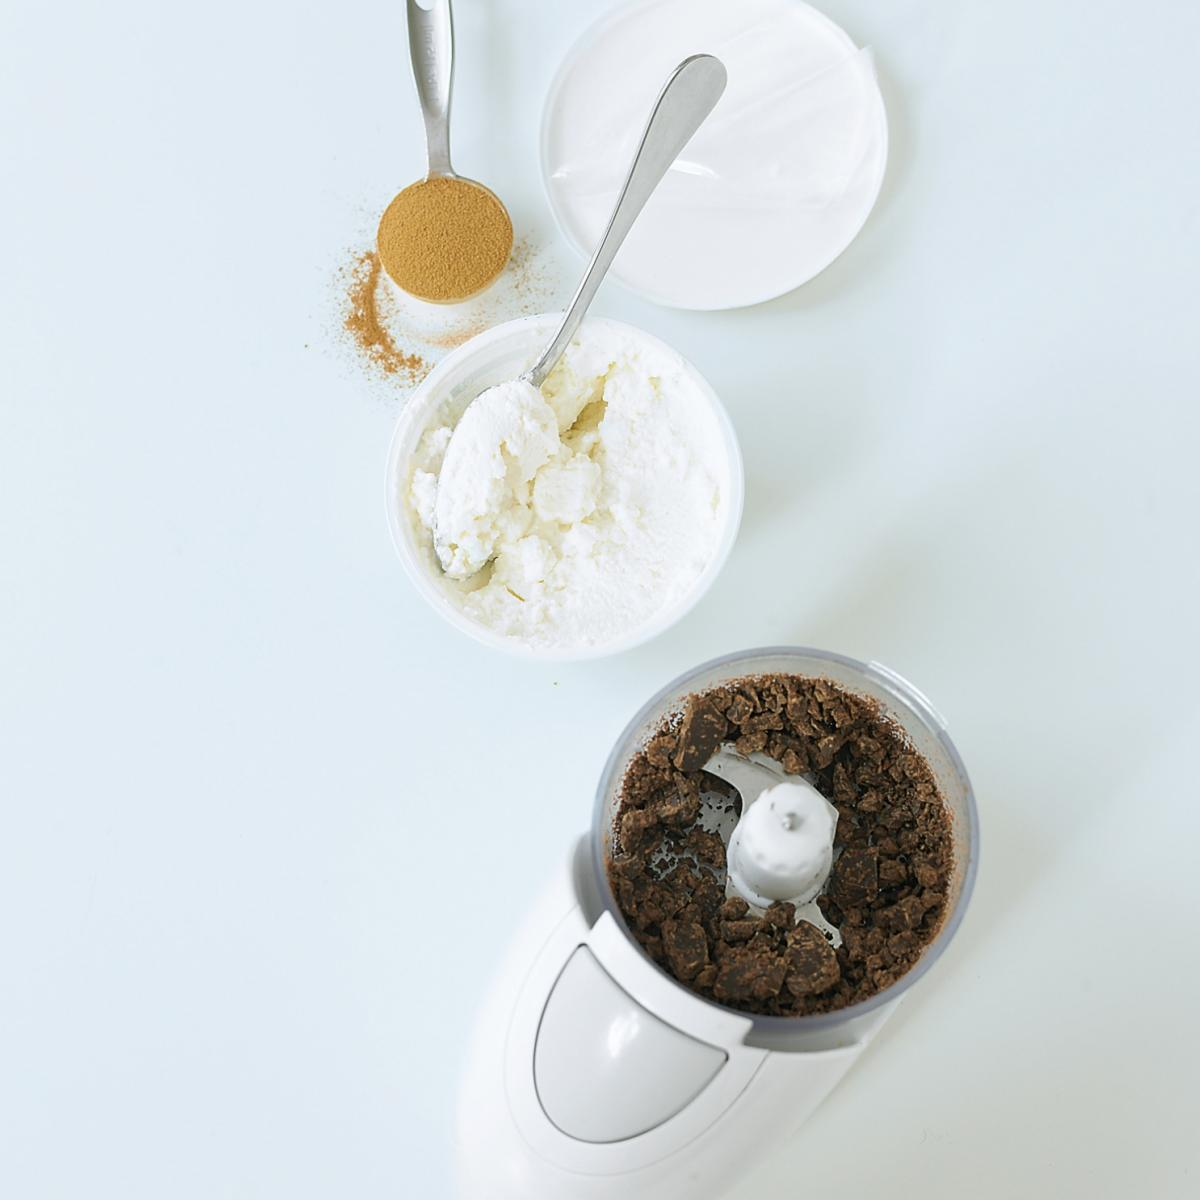 A picture of Delia's Coffee Ricotta Mousse recipe